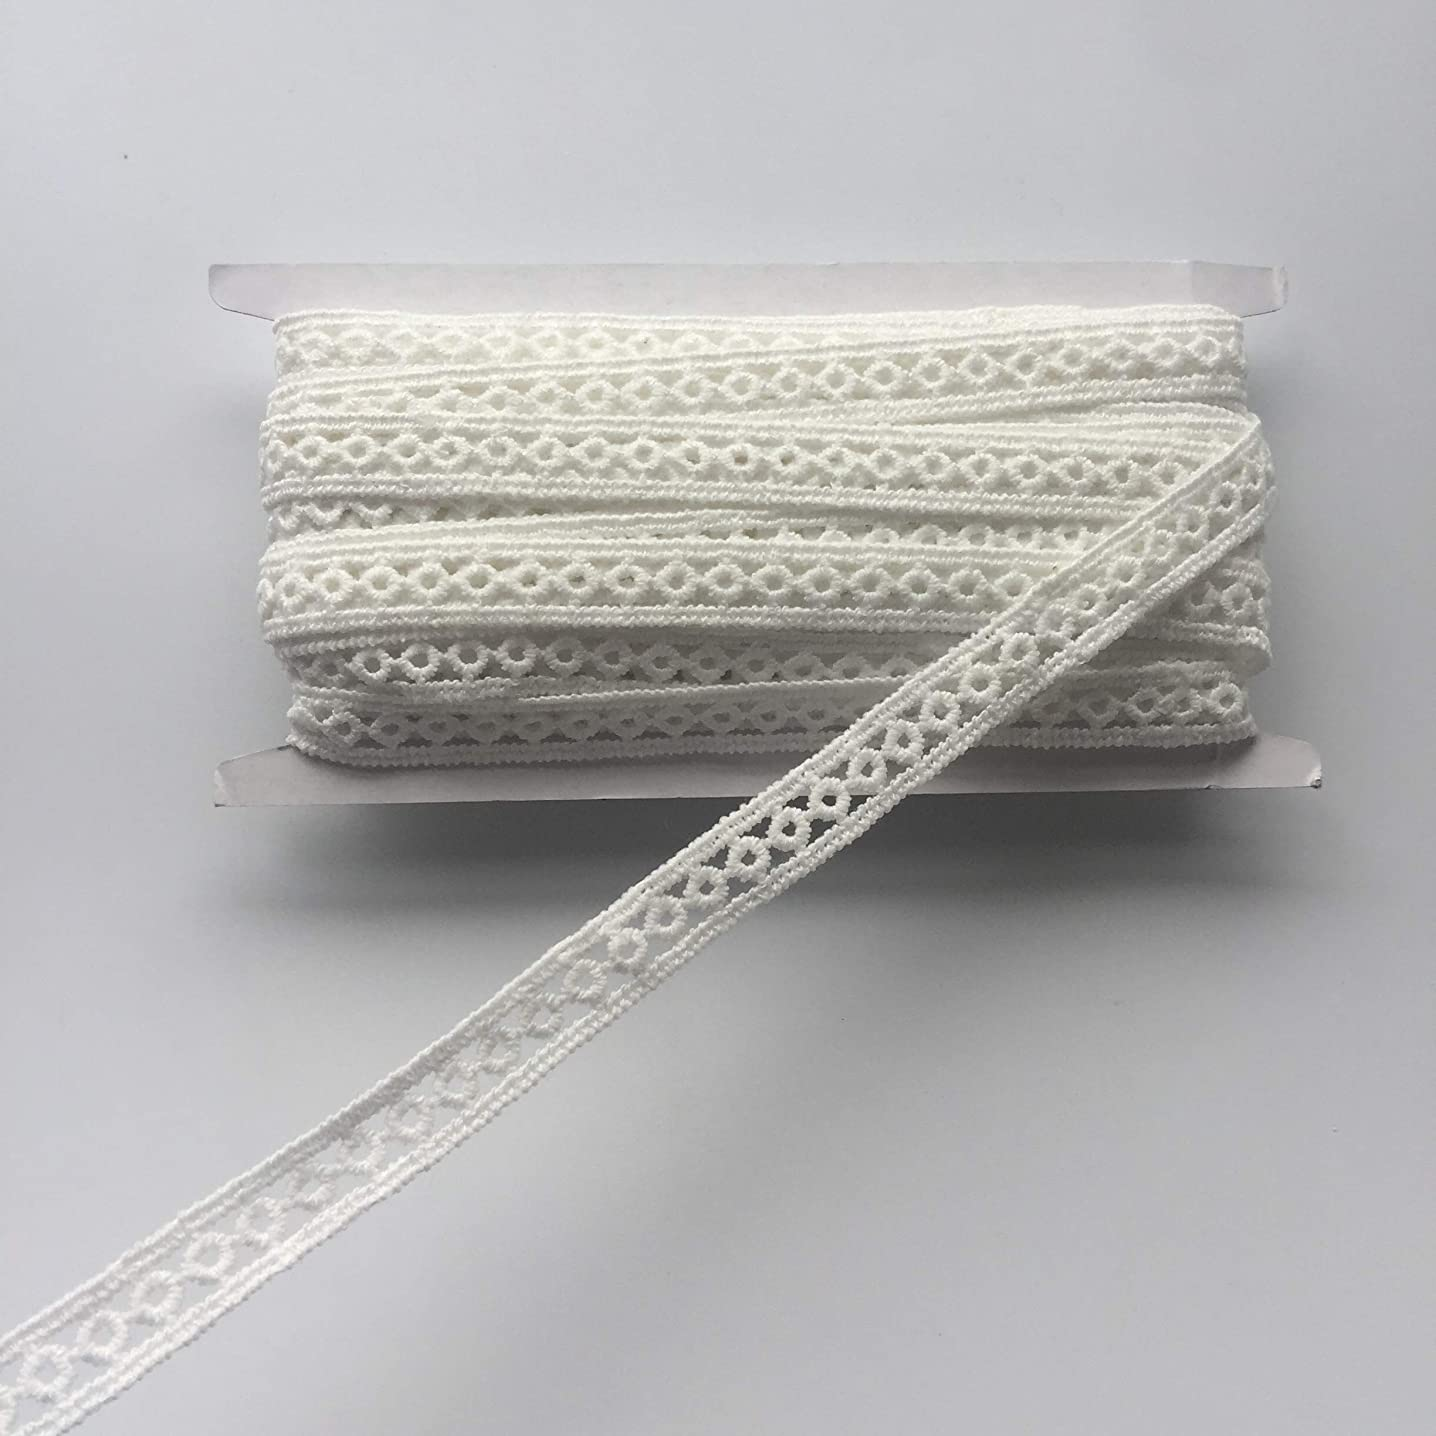 ELLAMAMA White Color Embroidered Lace Trim Lace Ribbon Band 3/8'' x 10 Yards with Small Circle Patterm,for DIY Craft,Sewing,Home Improvements,Decorations,Crewel&Quilting,Bridal Dress,etc